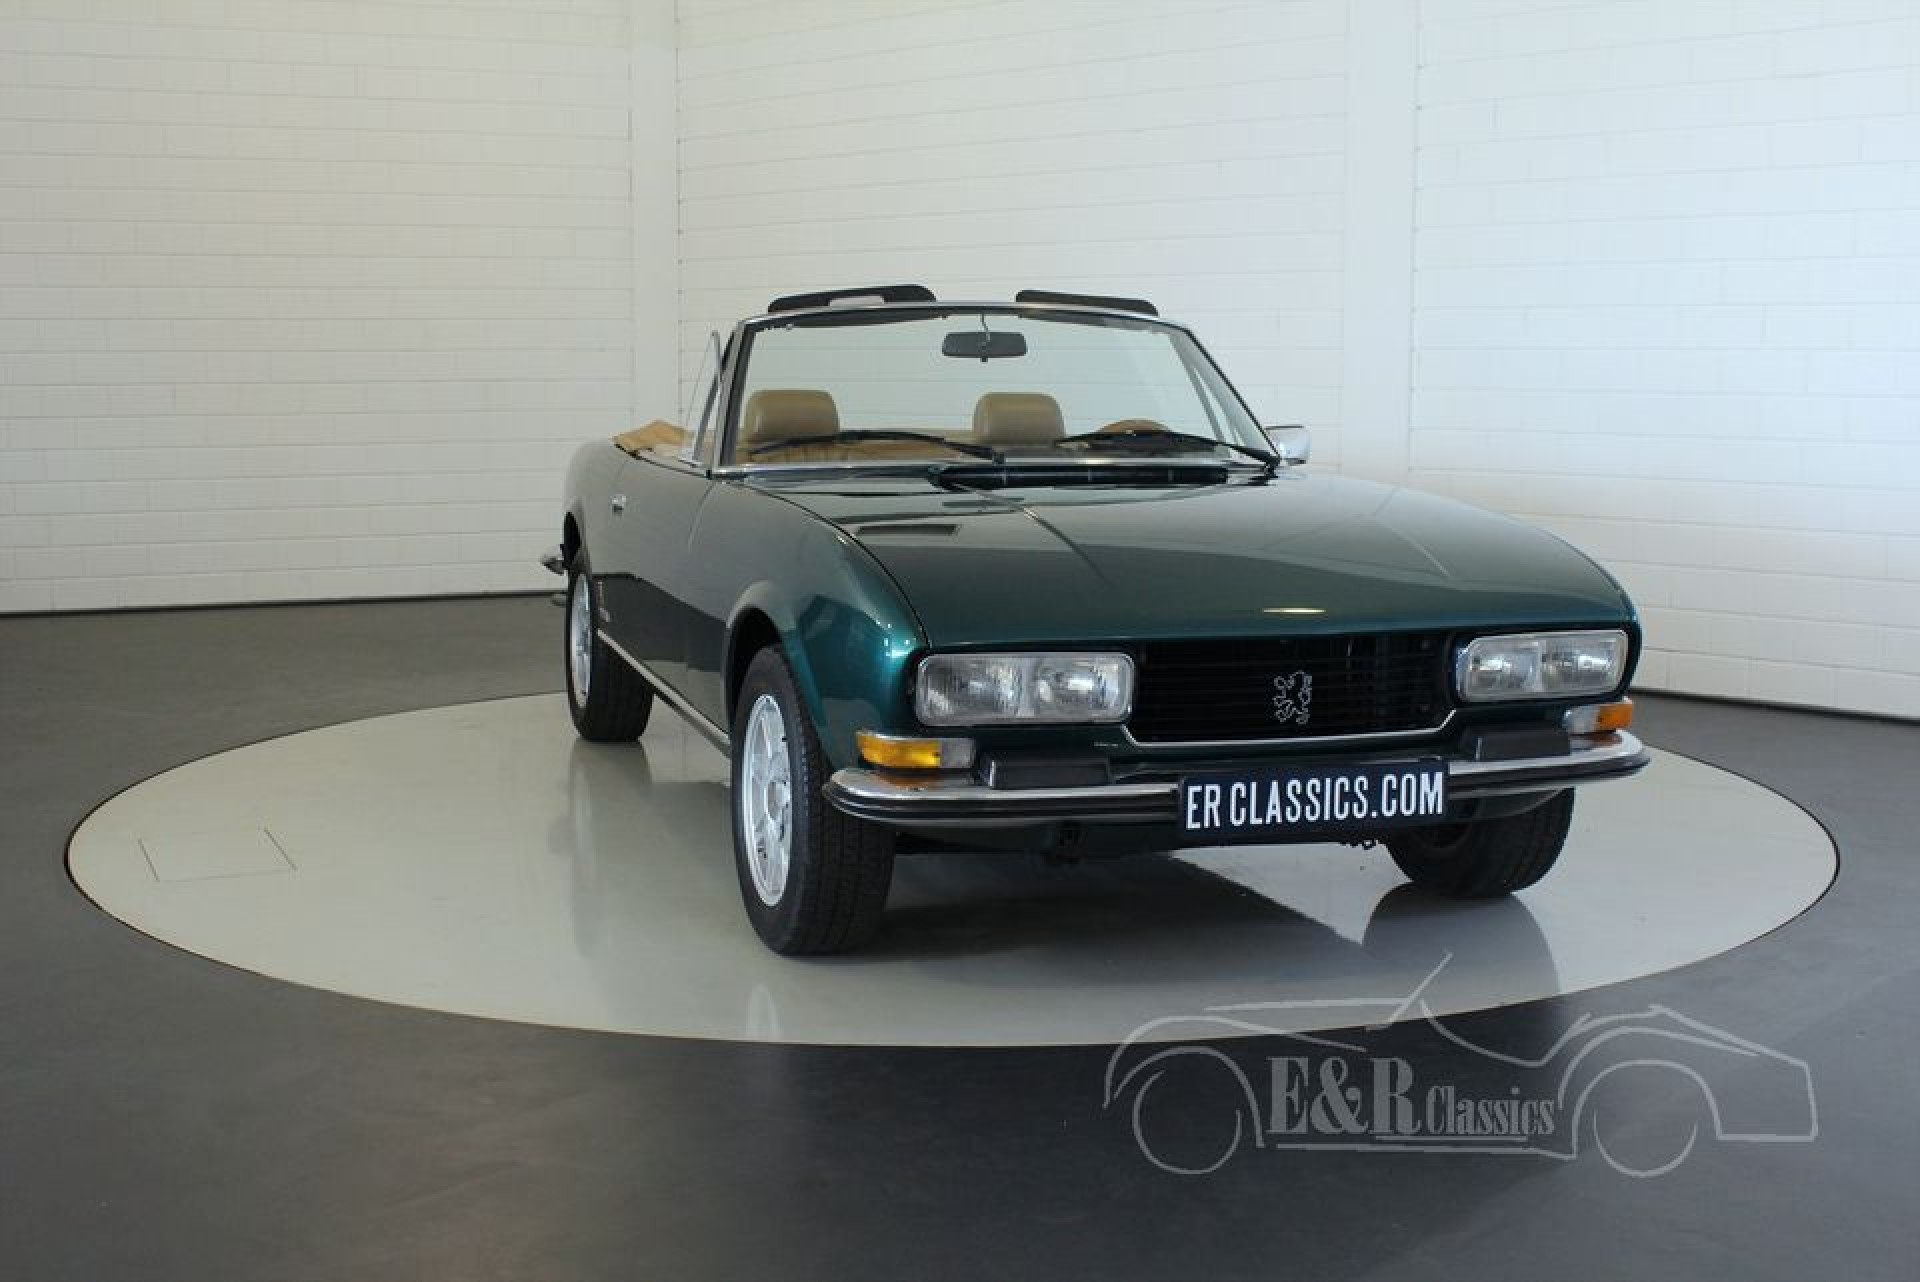 Peugeot 504 Cabriolet 1976 For Sale At Erclassics